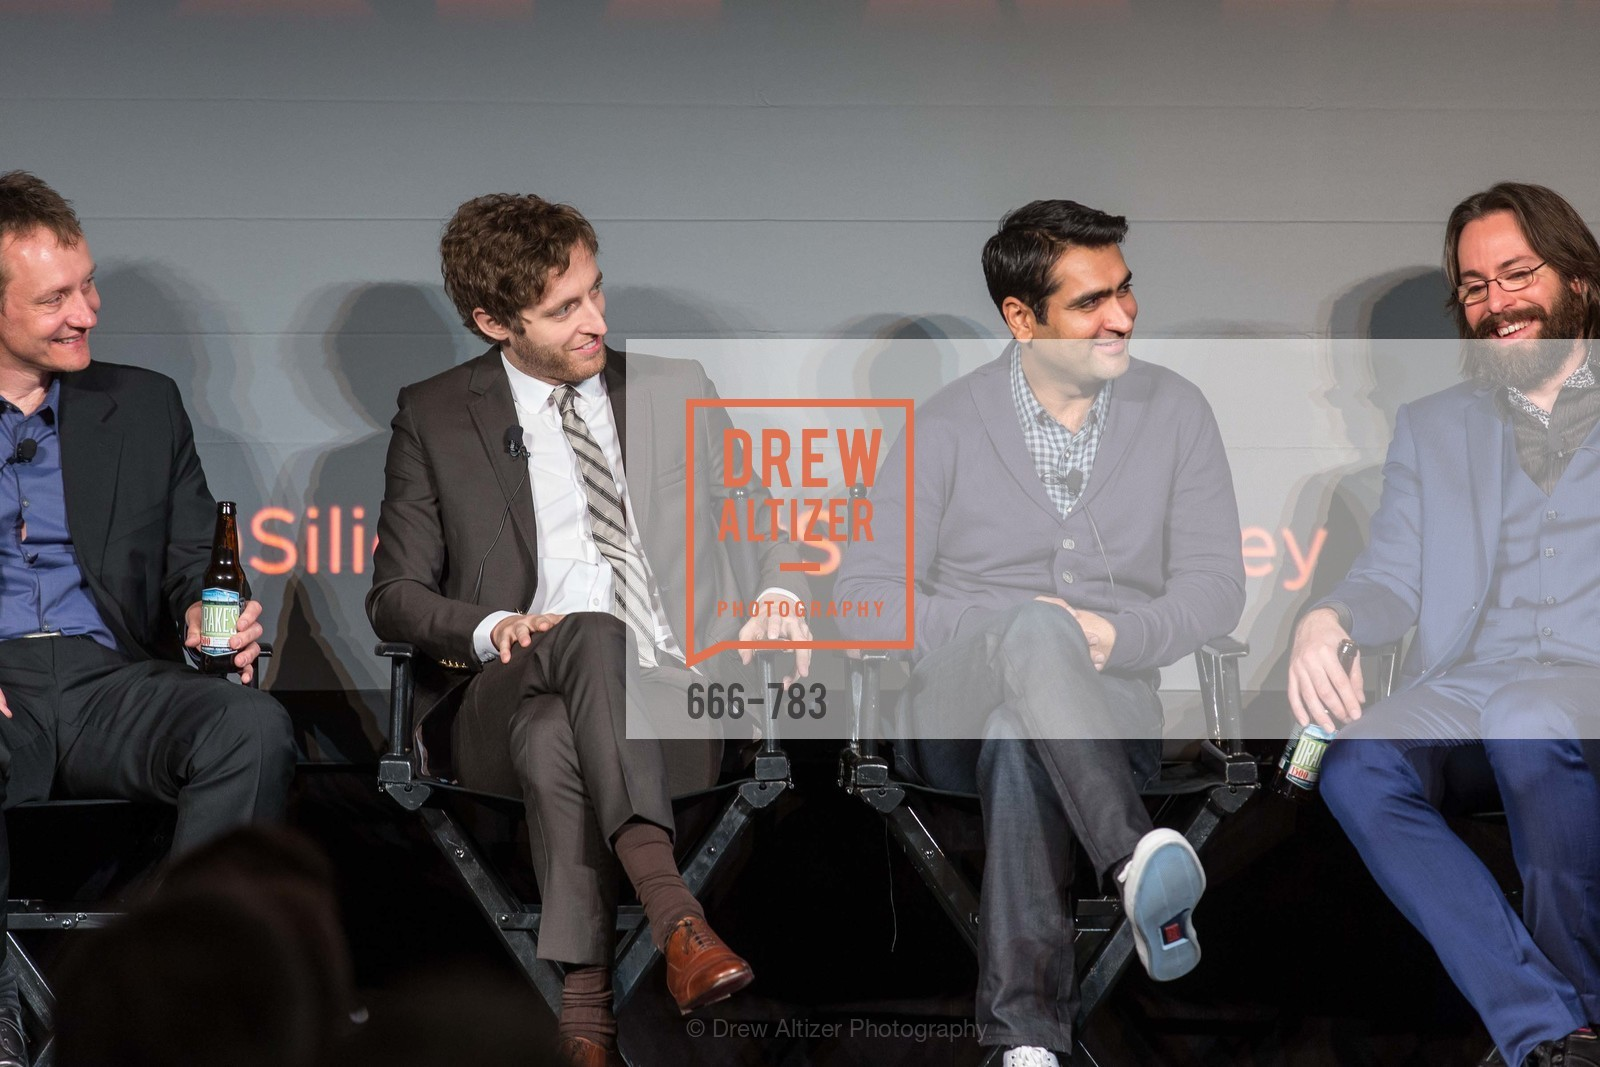 Alec Berg, Thomas Middleditch, Kumail Nanjiani, Martin Starr, HBO'S SILICON VALLEY San Francisco Screening, US, April 9th, 2015,Drew Altizer, Drew Altizer Photography, full-service agency, private events, San Francisco photographer, photographer california